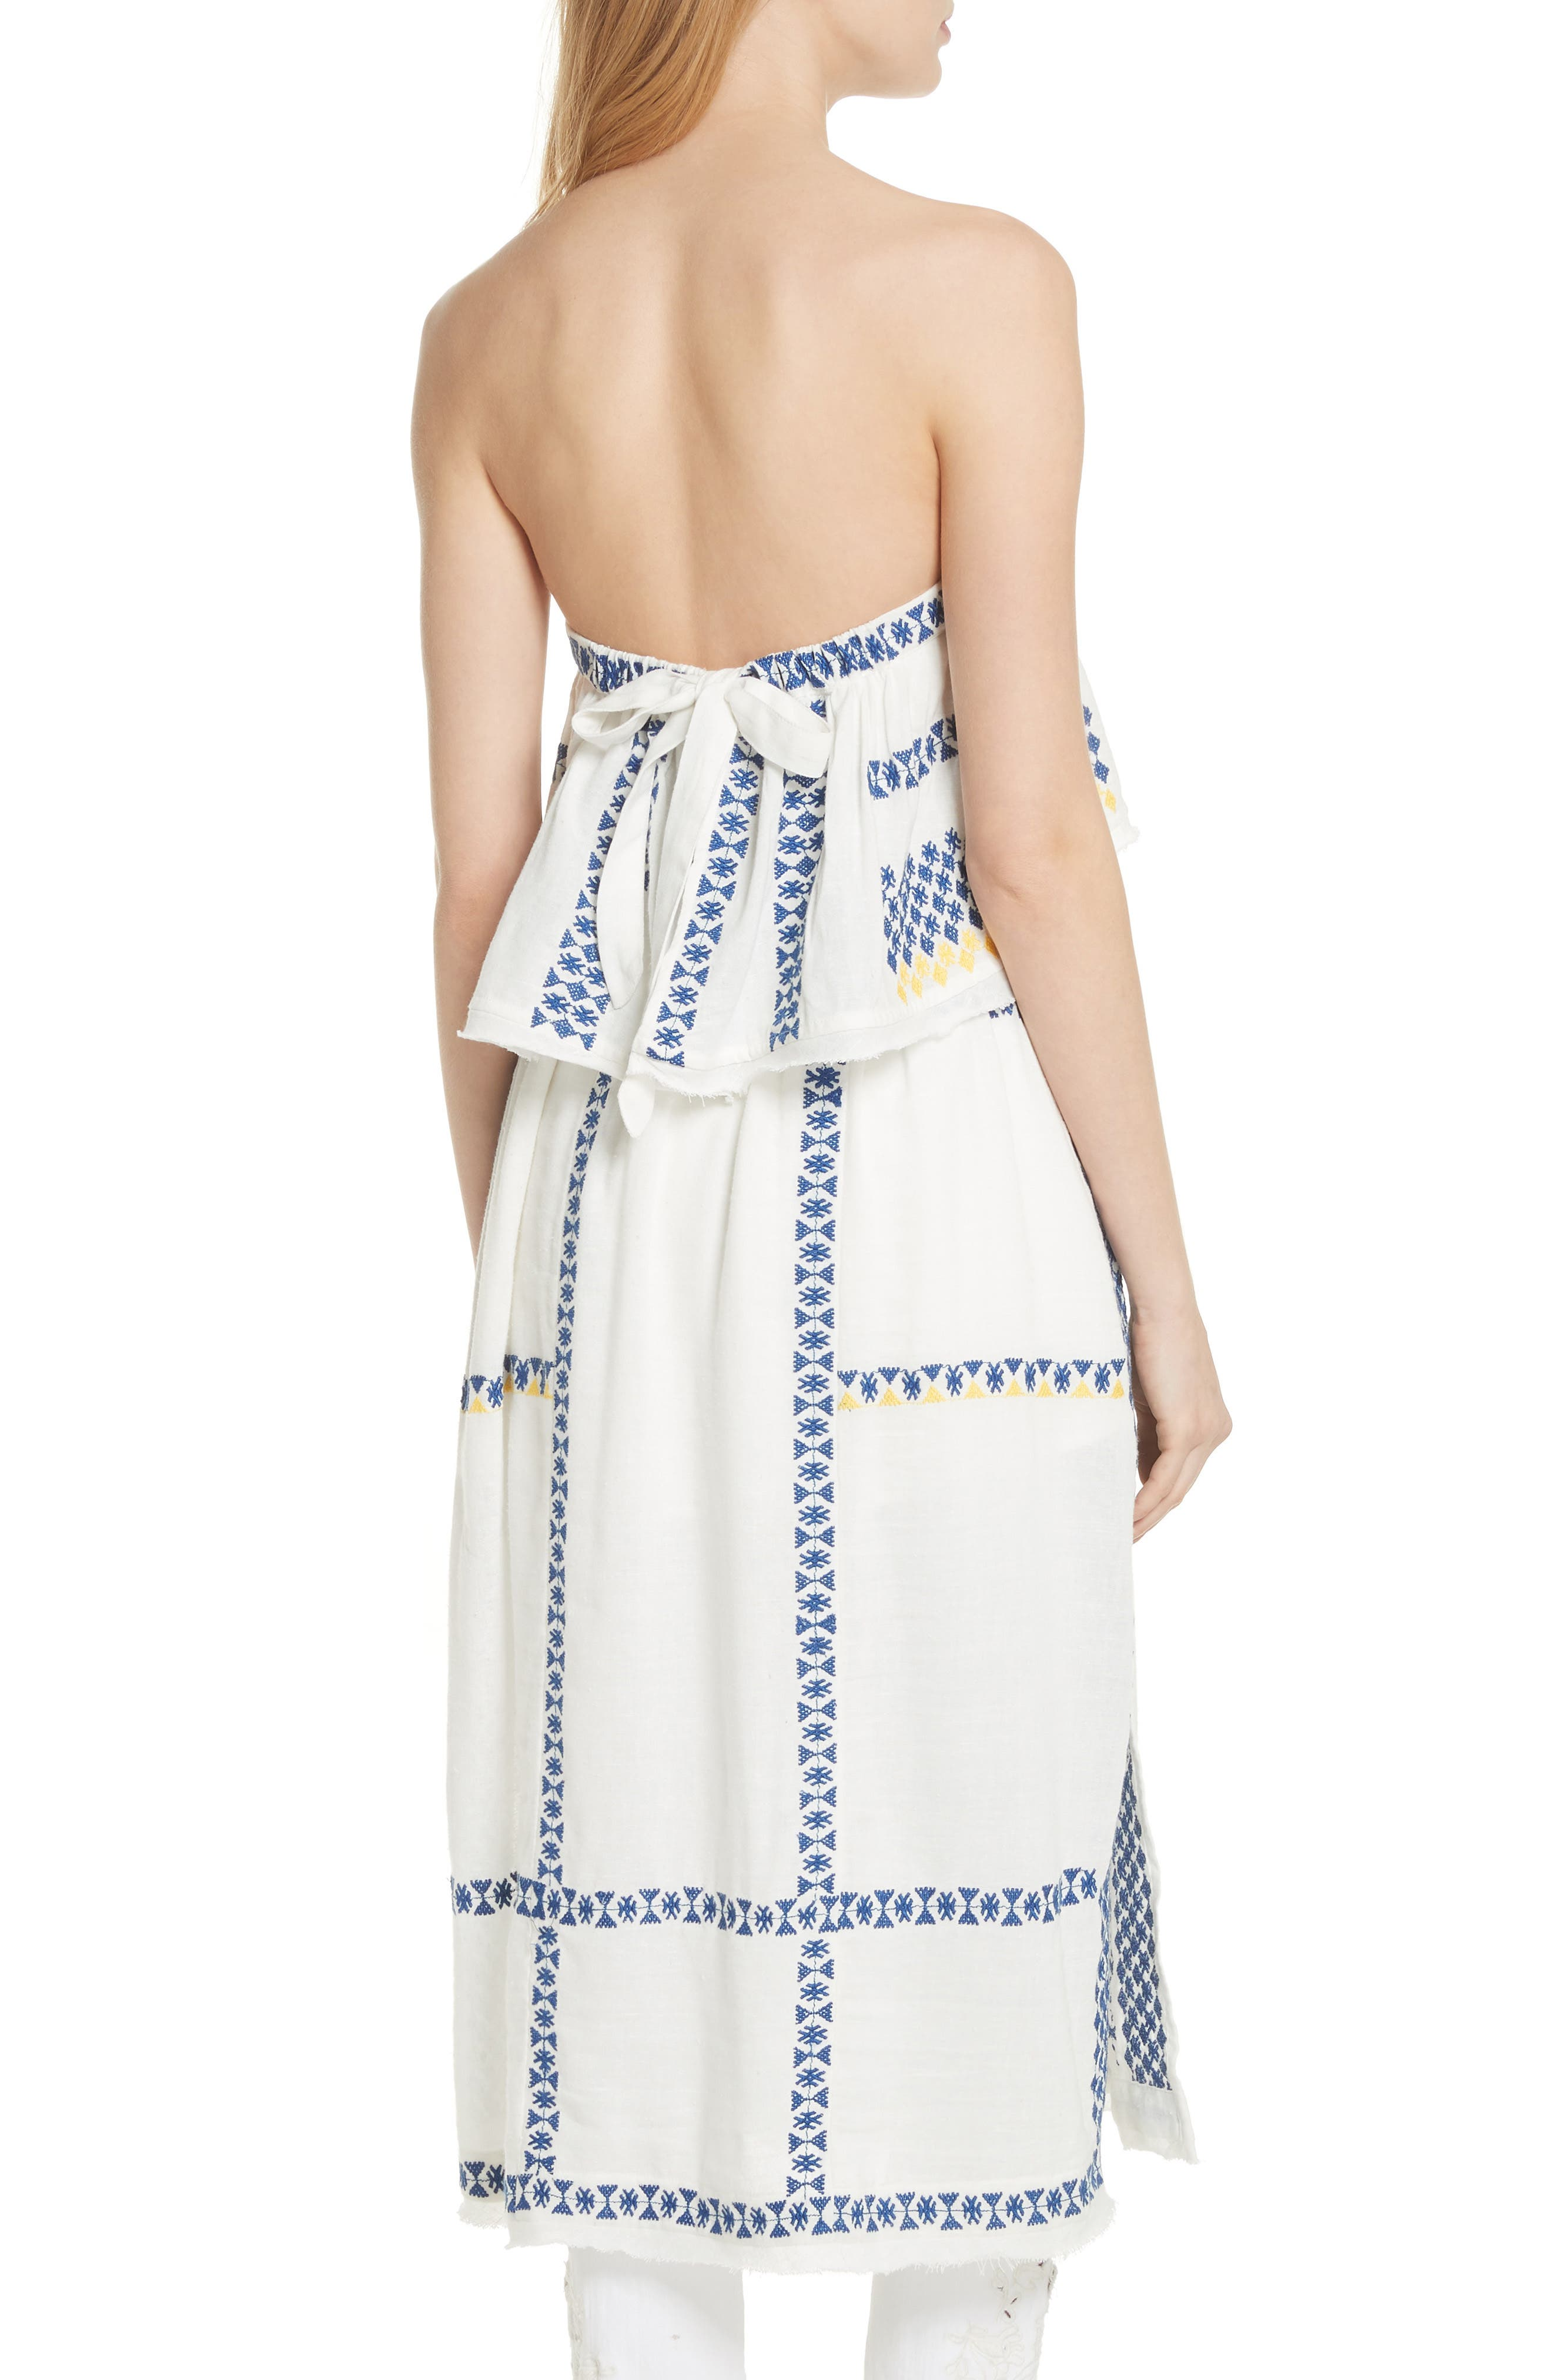 Wild Romance Embroidered Dress,                             Alternate thumbnail 2, color,                             Ivory